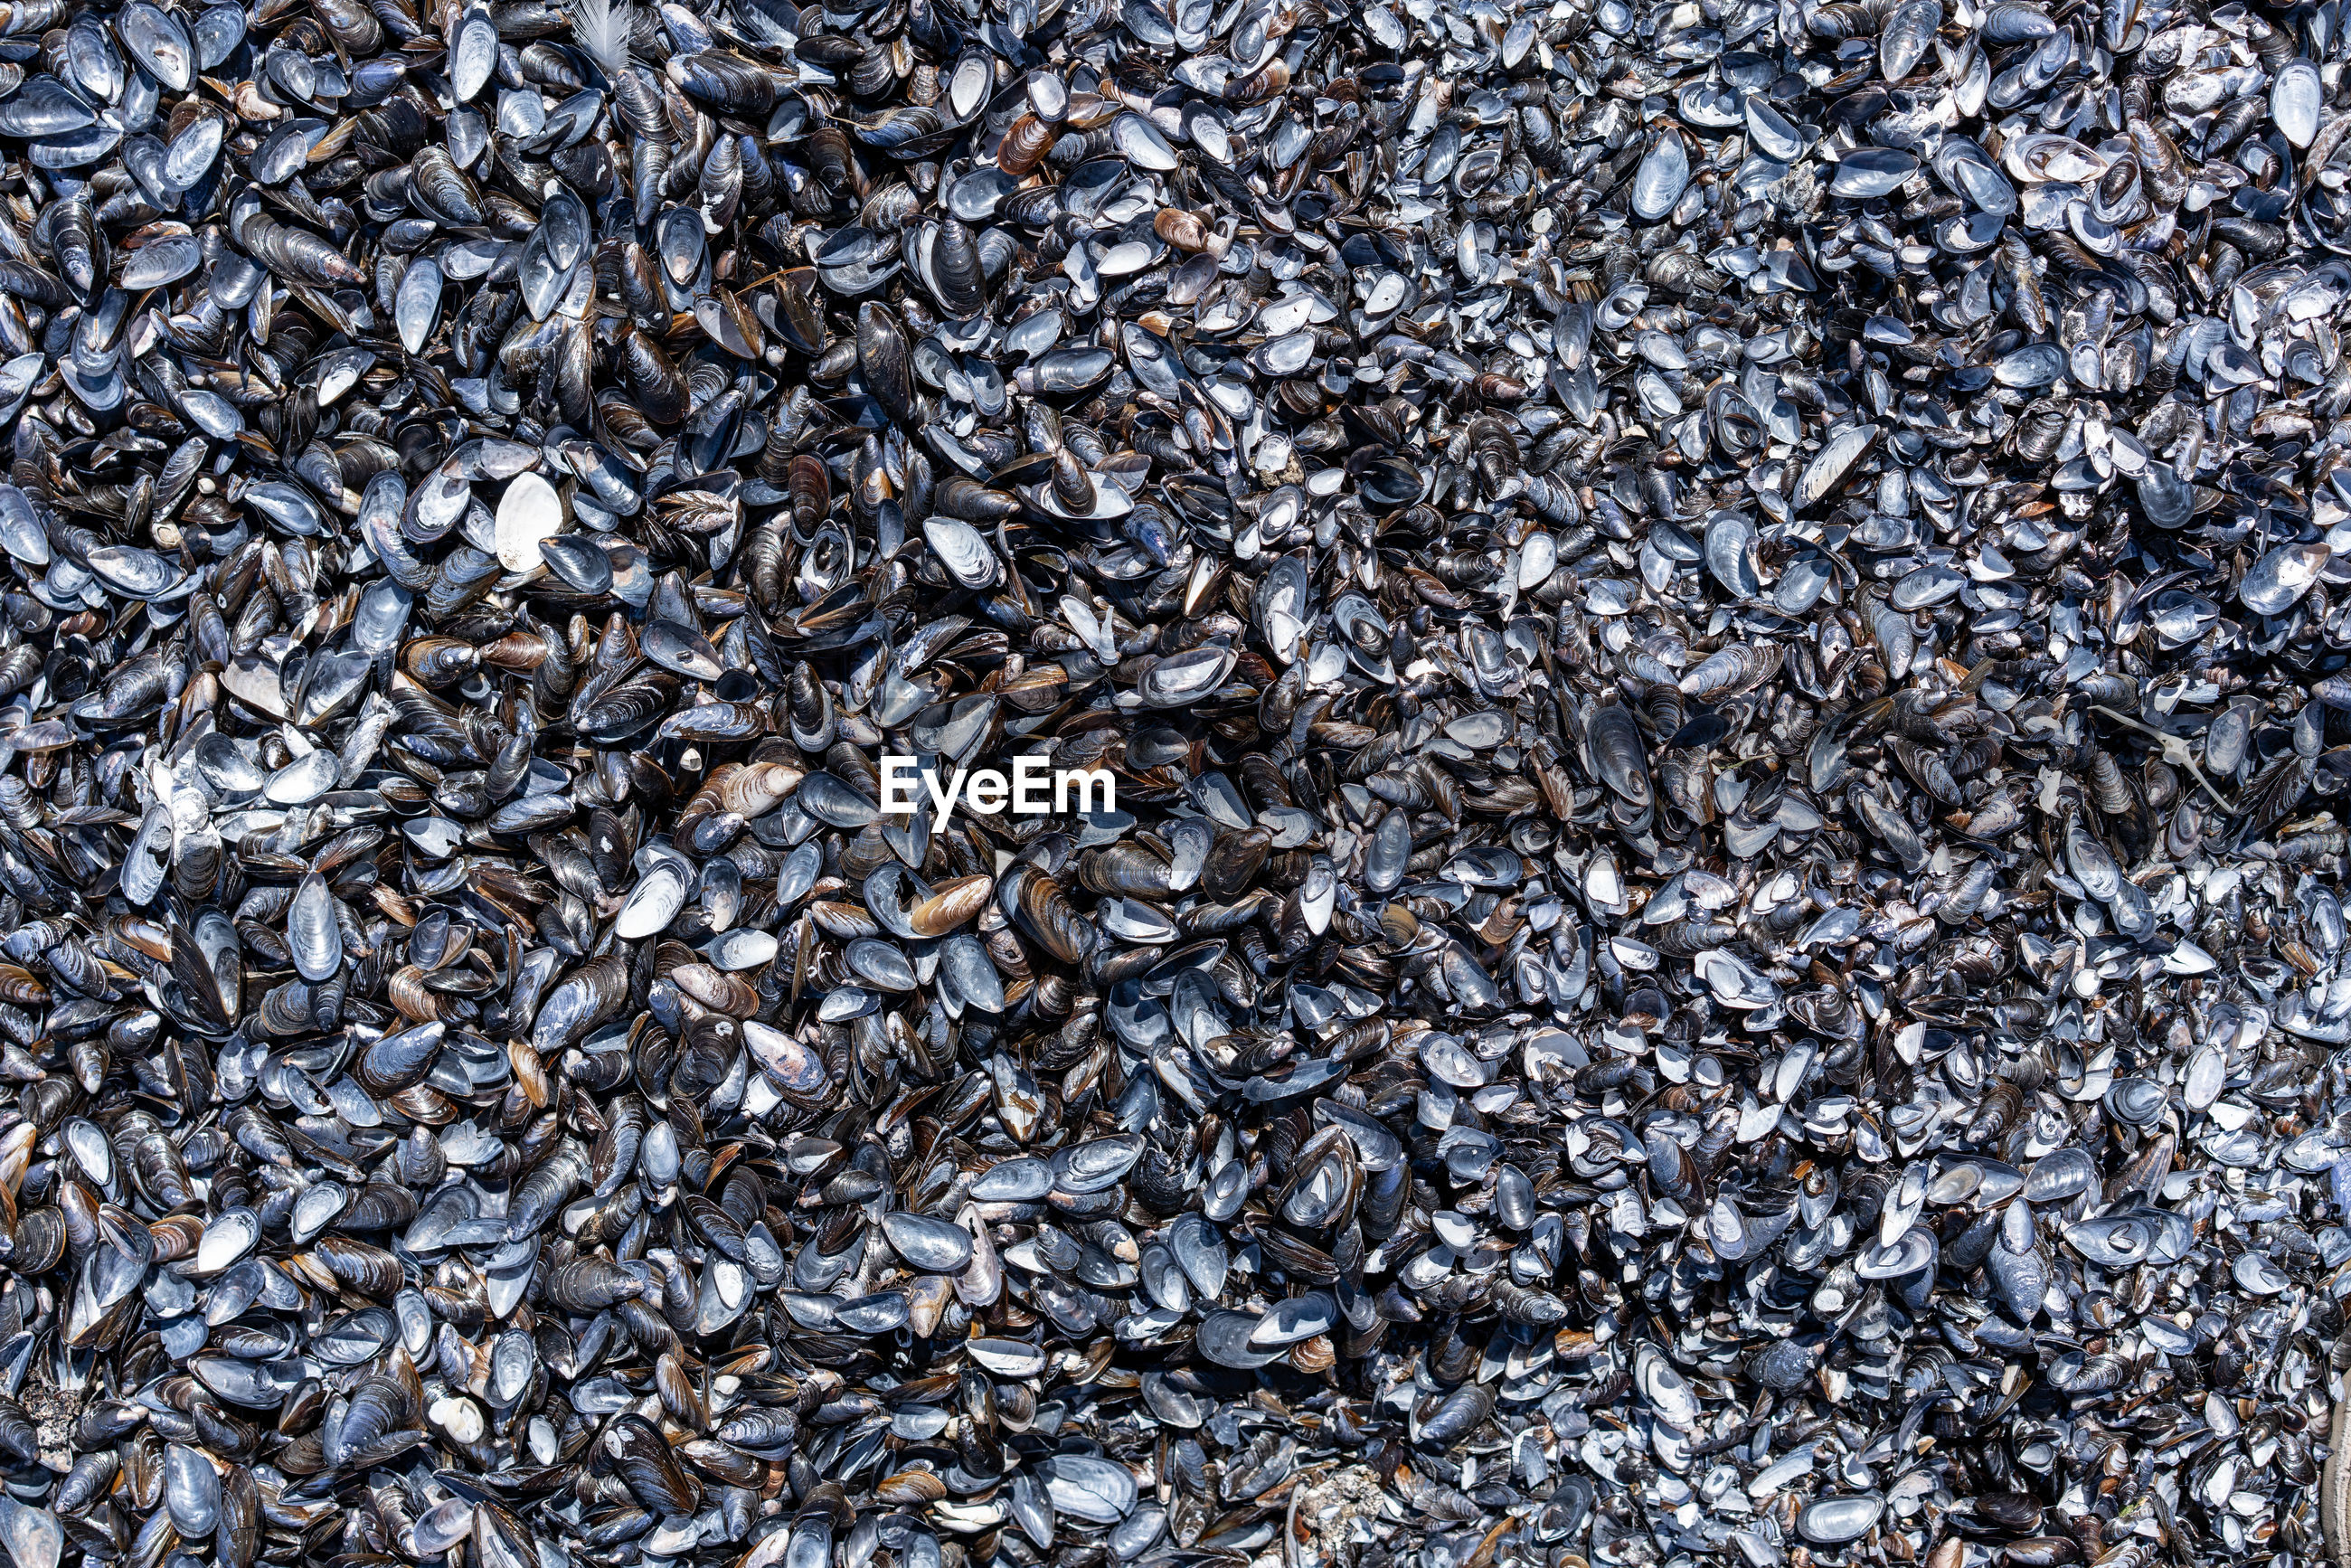 Full frame shot of mussels for sale at market